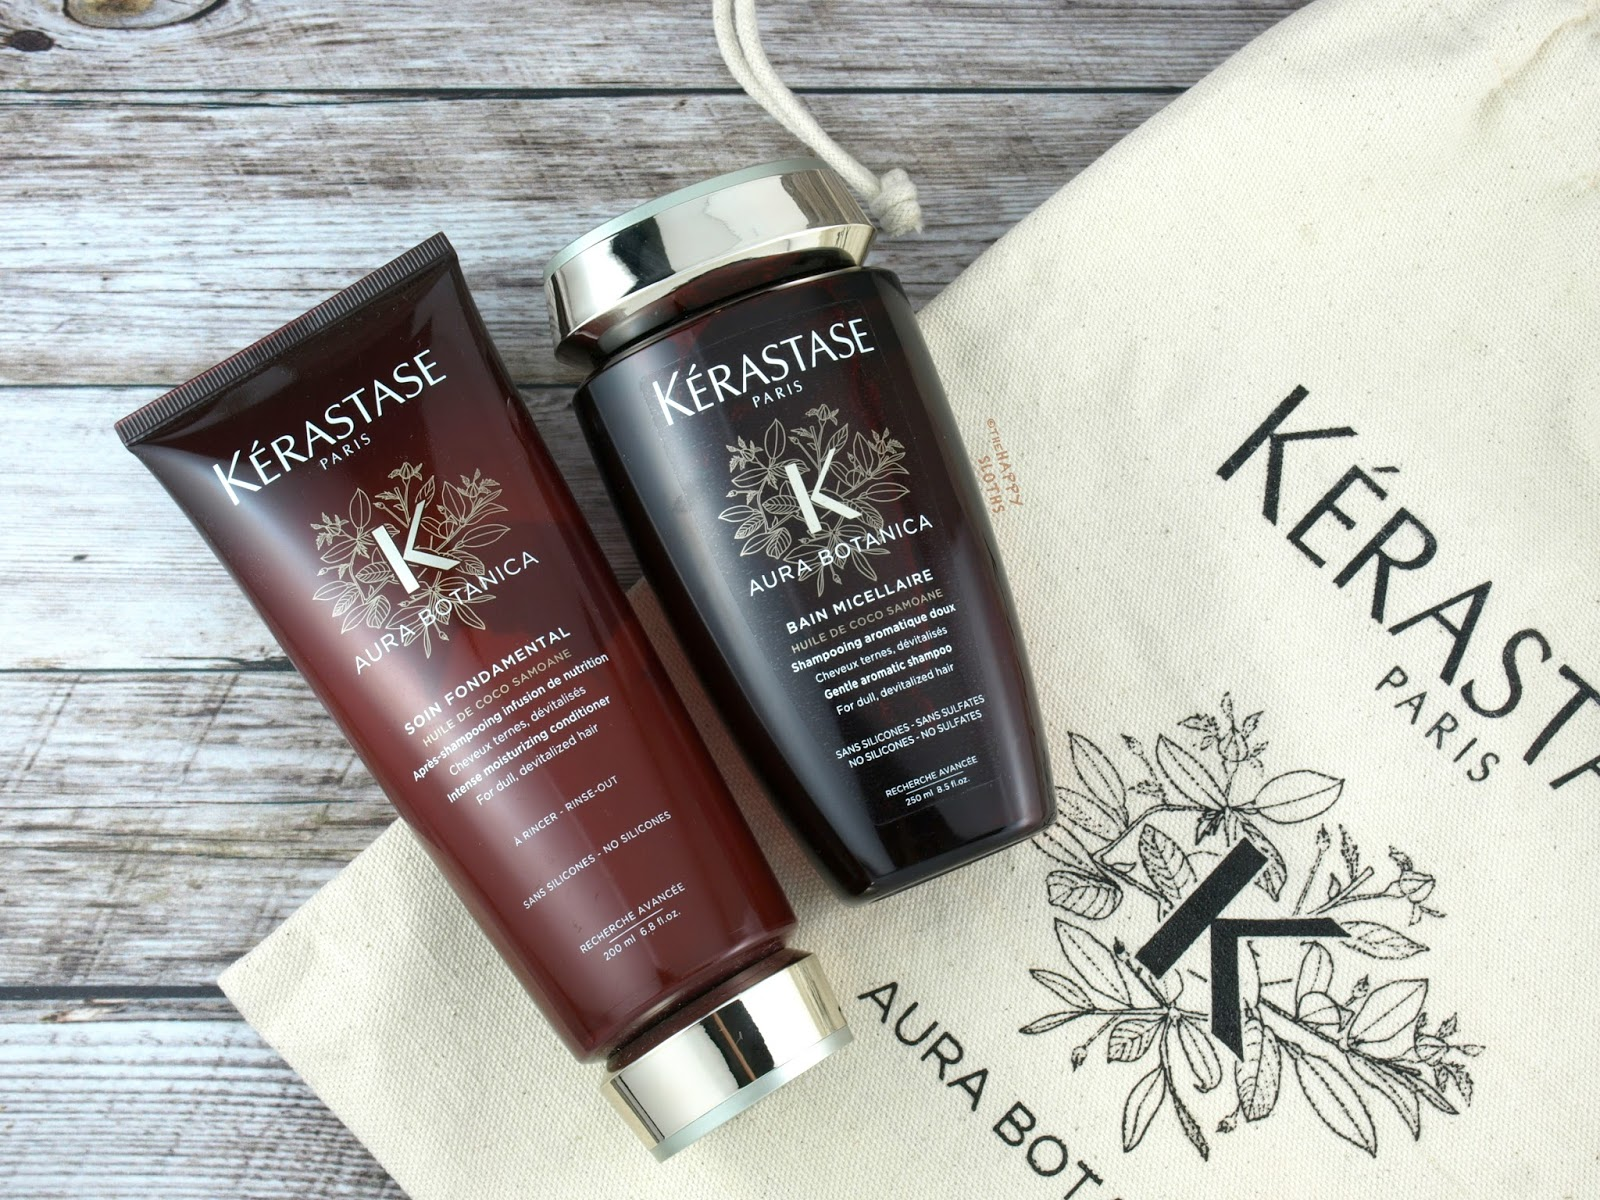 kerastase aura botanica collection review the happy. Black Bedroom Furniture Sets. Home Design Ideas